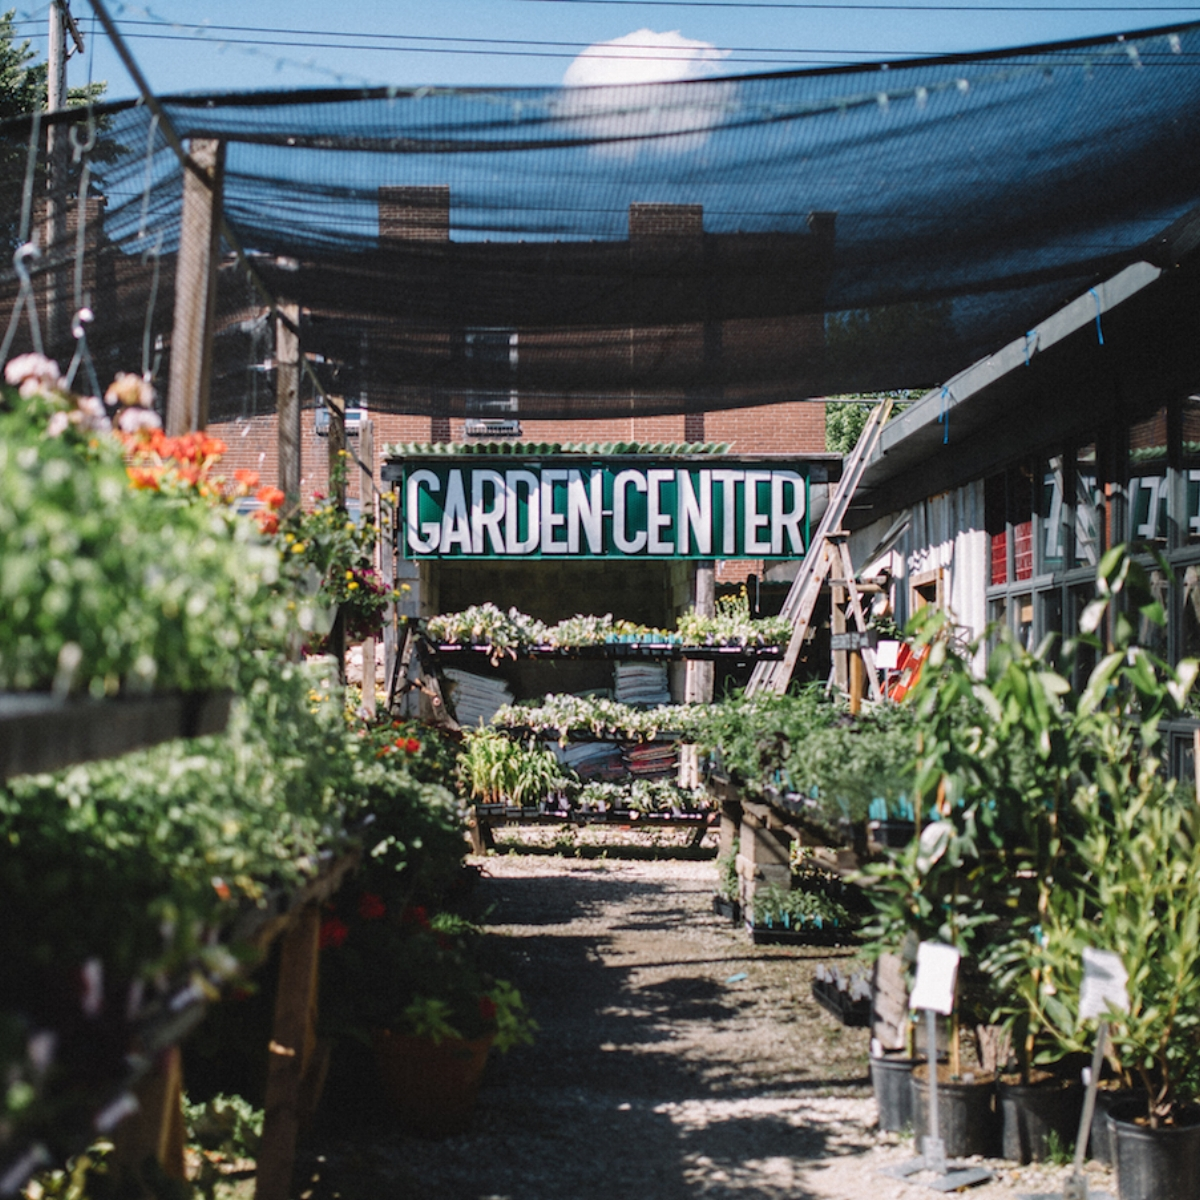 Photo by Virginia Harold